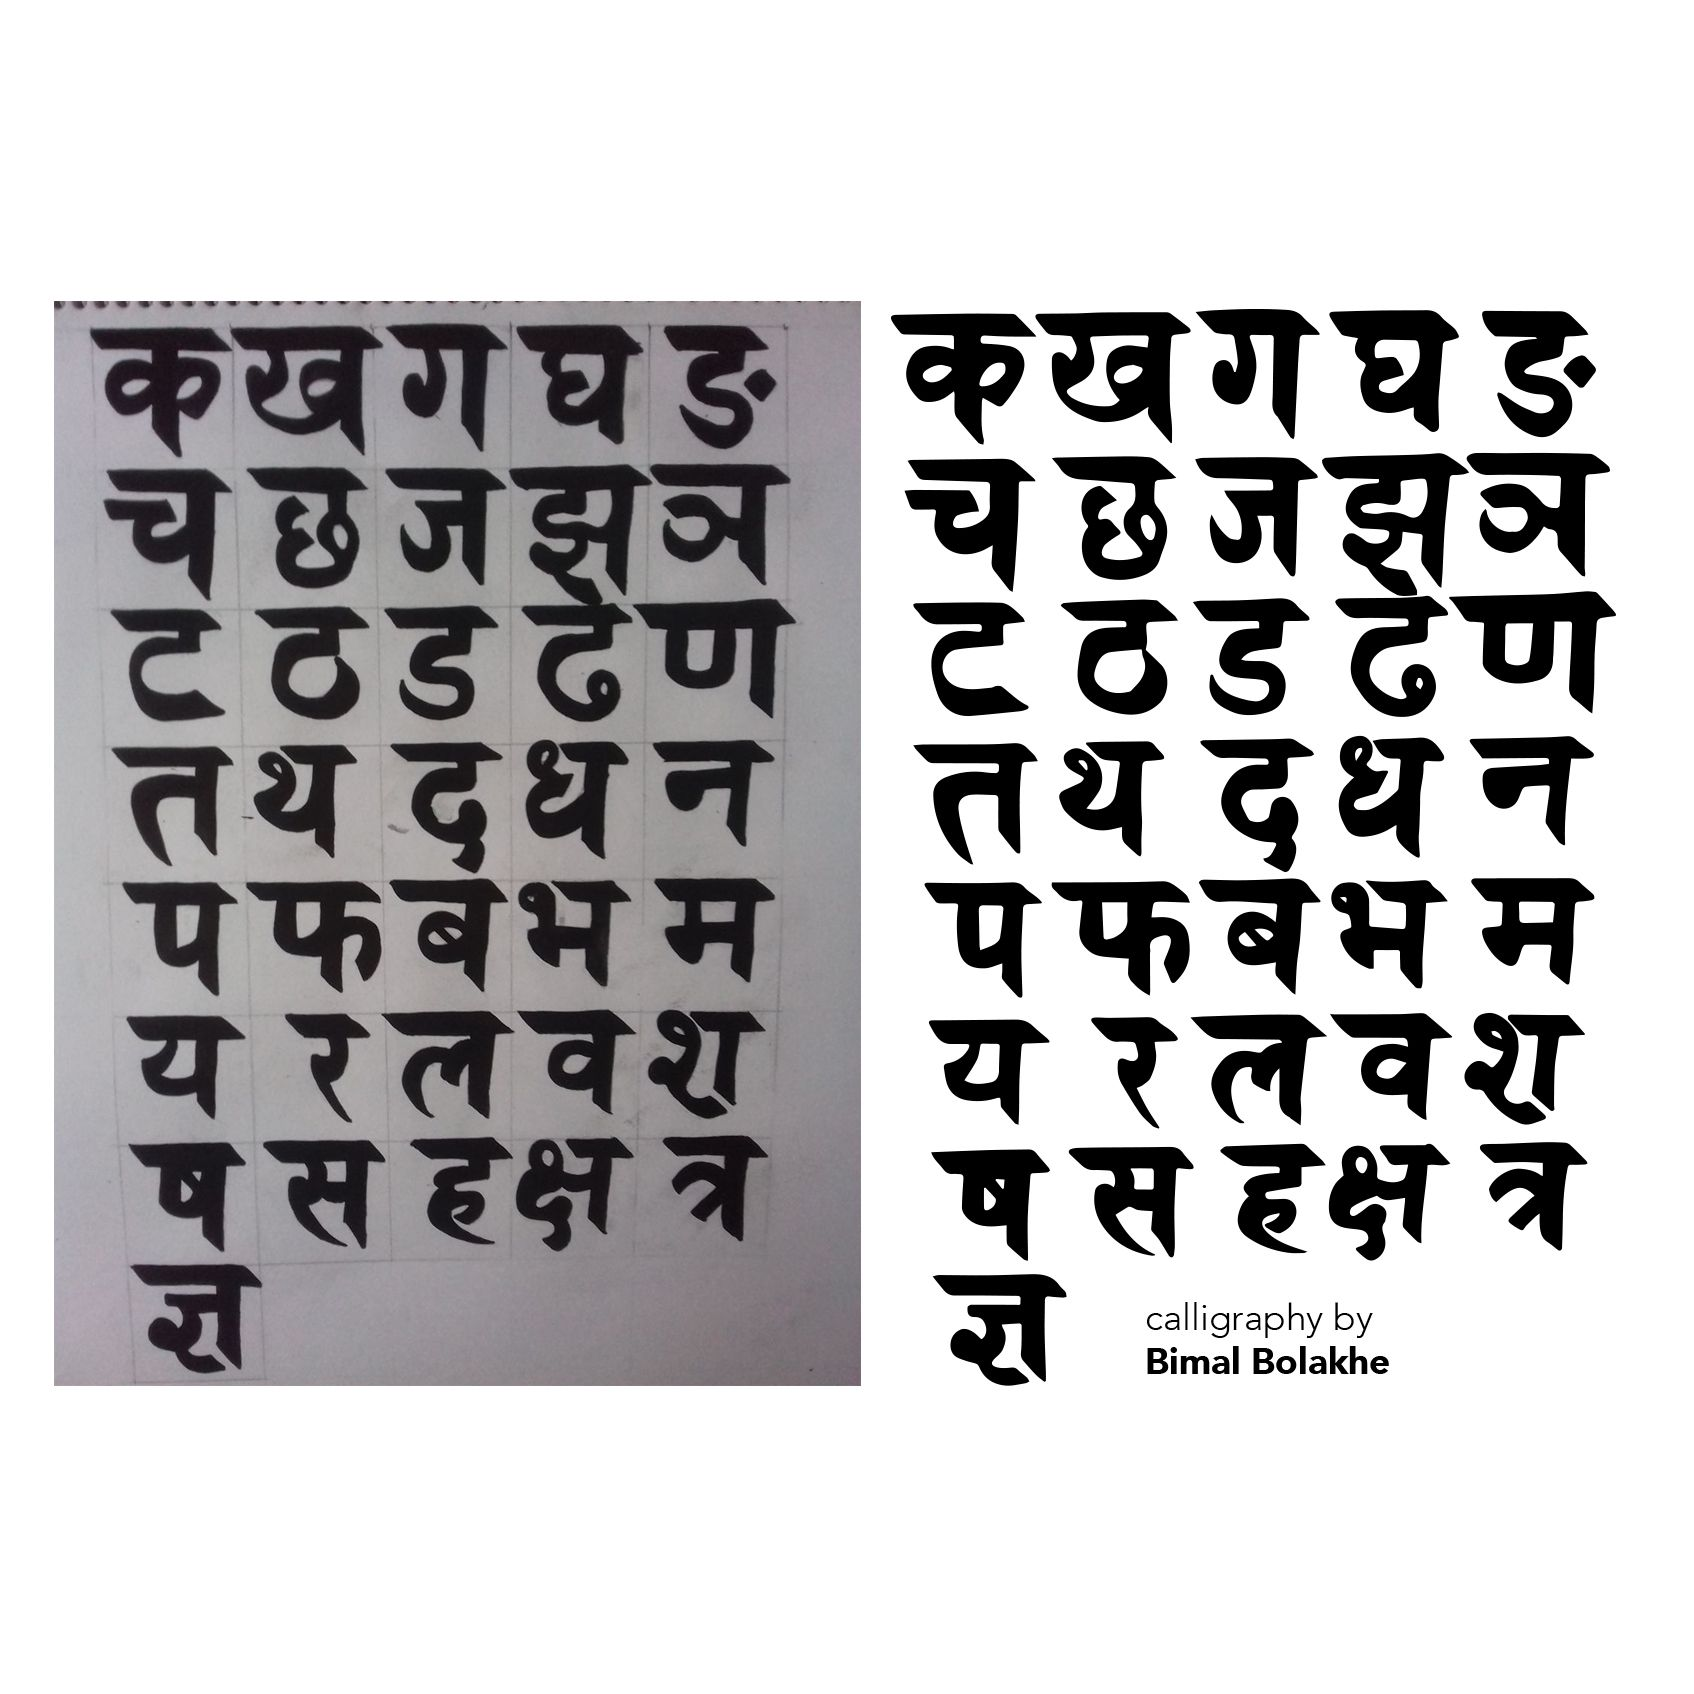 Pin by Nina Rodriquez on Hindi fonts | New work, Working on myself, Art